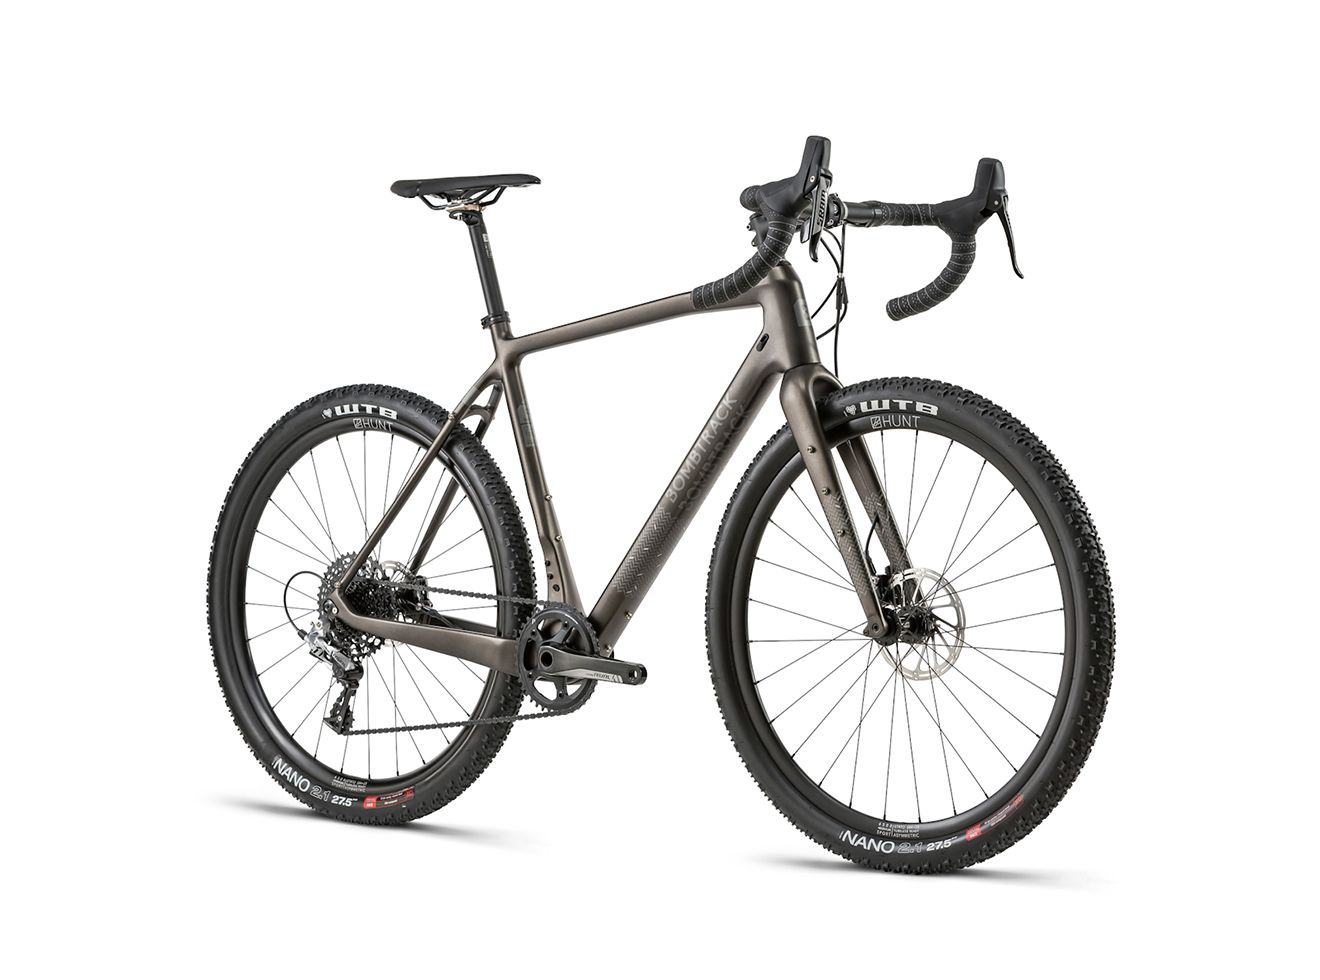 43c07f4986d Best Gravel Bikes for Speed, Gravel Racing, and Touring in 2018 ...